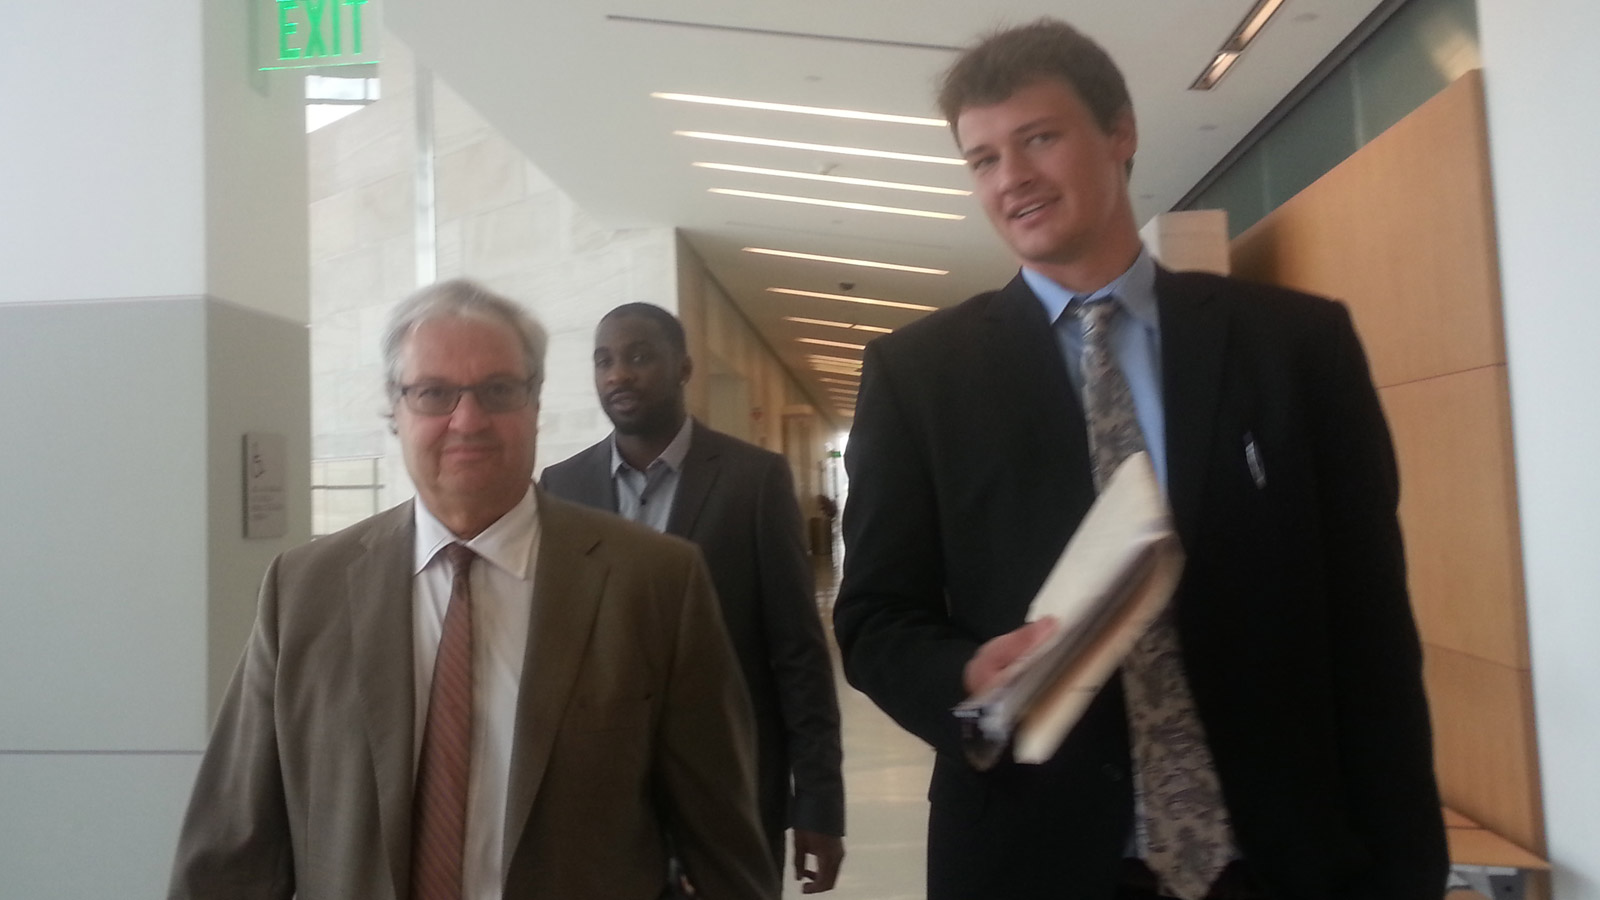 Denver Nuggets Ty Lawson walks behind his lawyer Harvey Steinberg in court on Friday (credit: CBS)